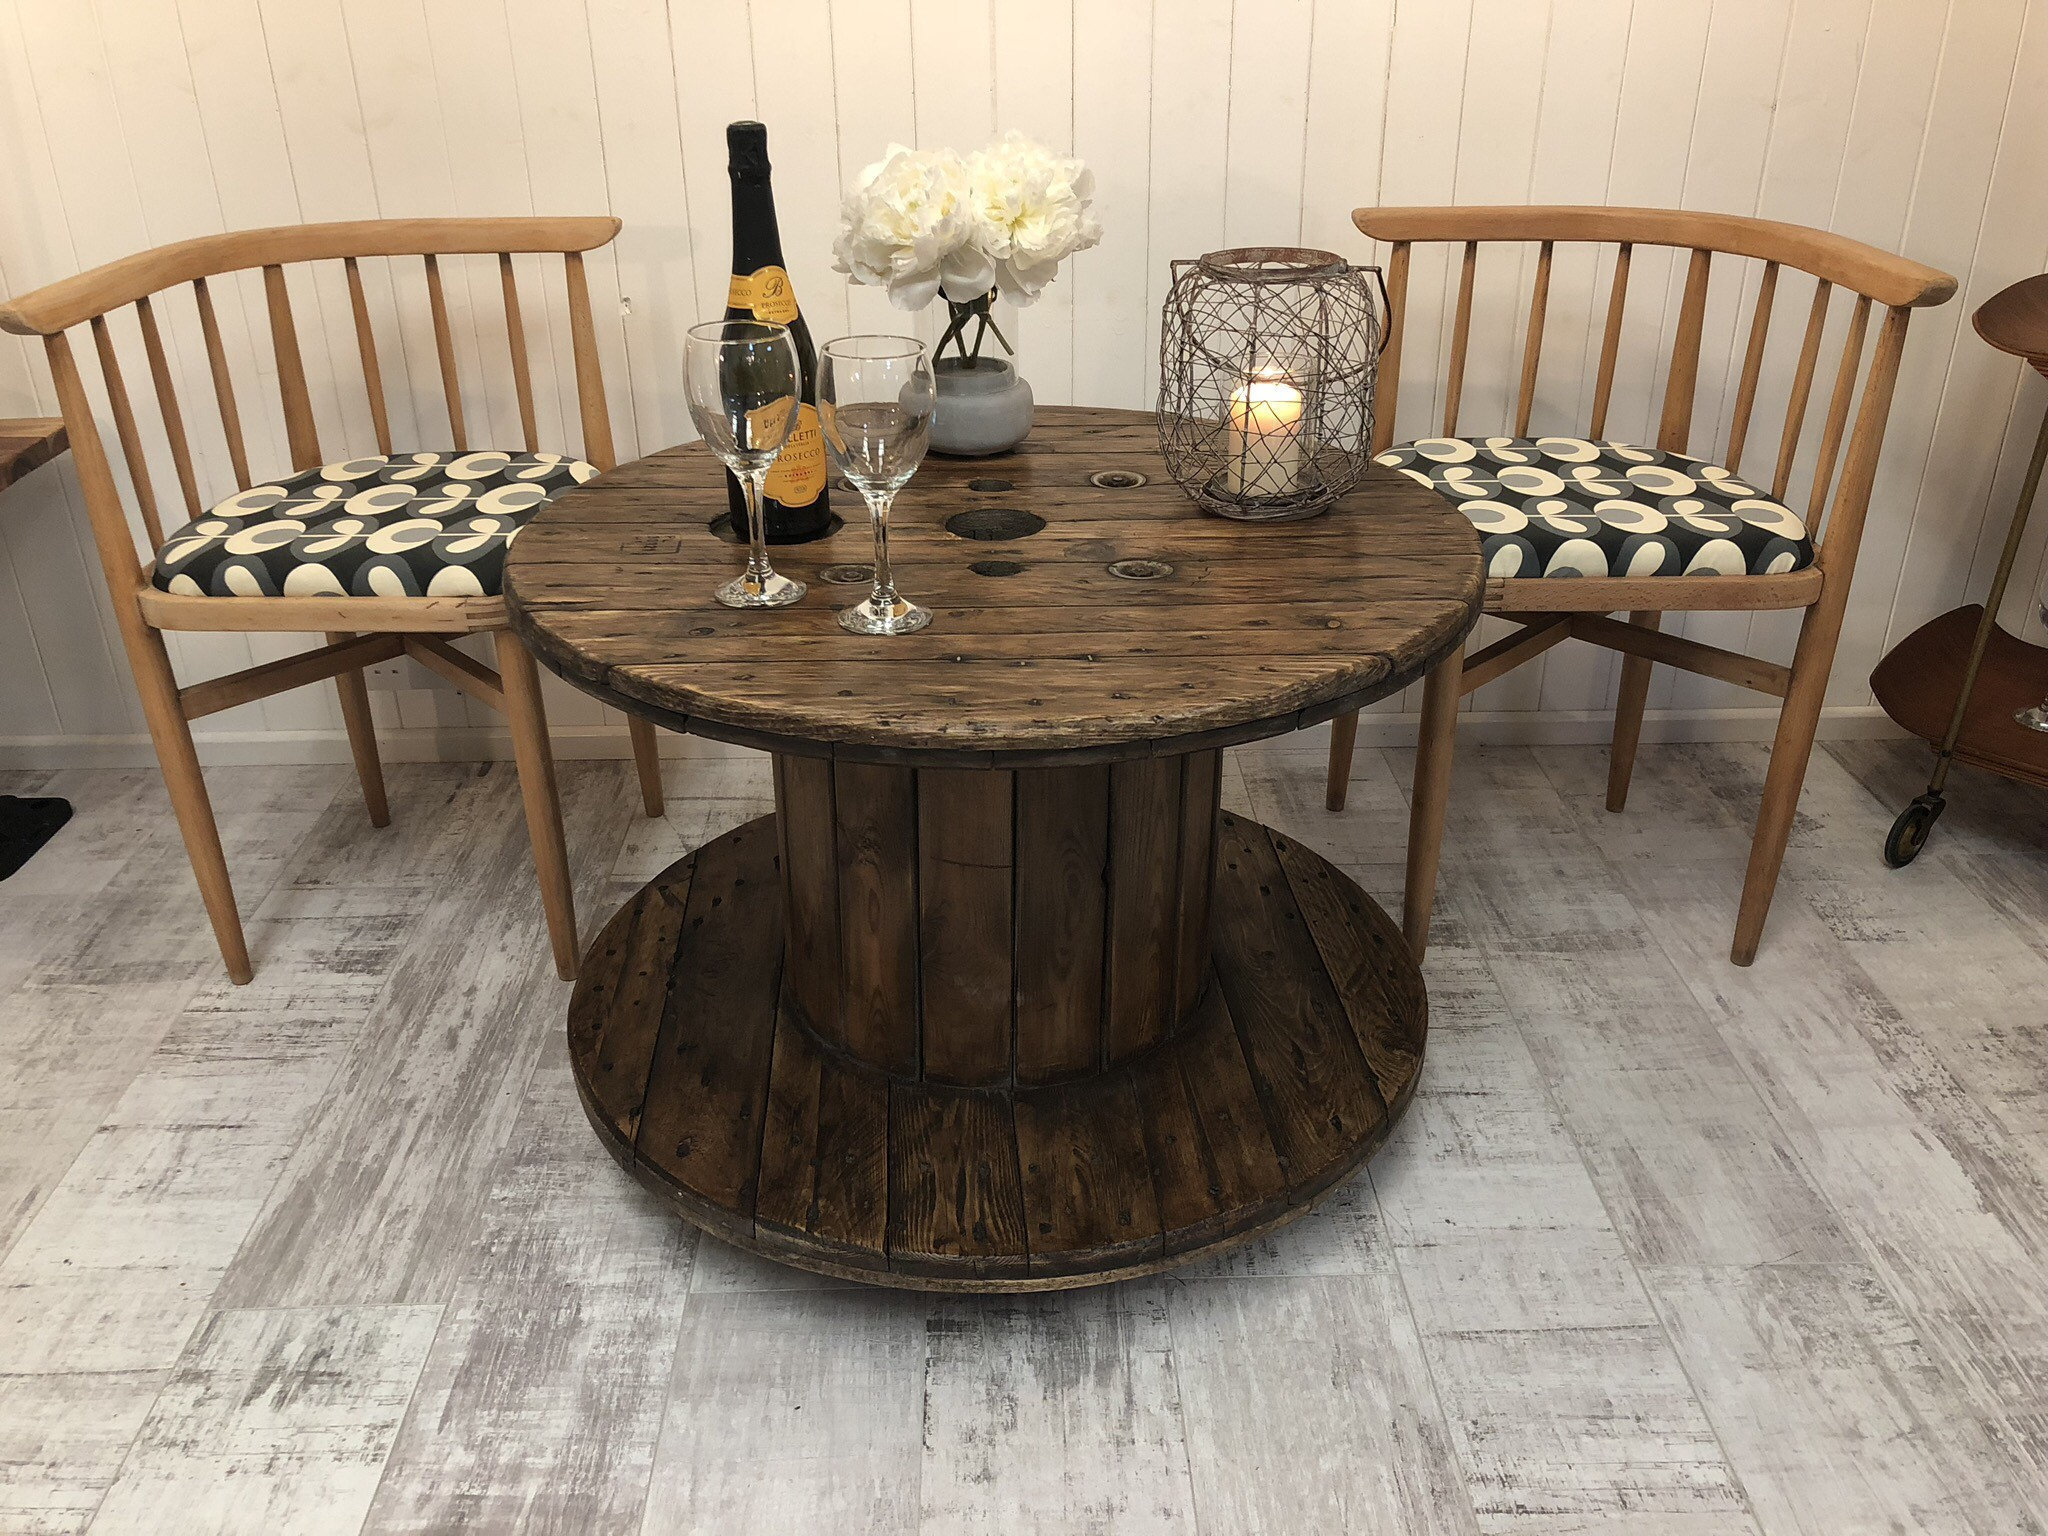 cable drum table reclaimed table meeting table industrial coffee table large cable drum wooden coffee table